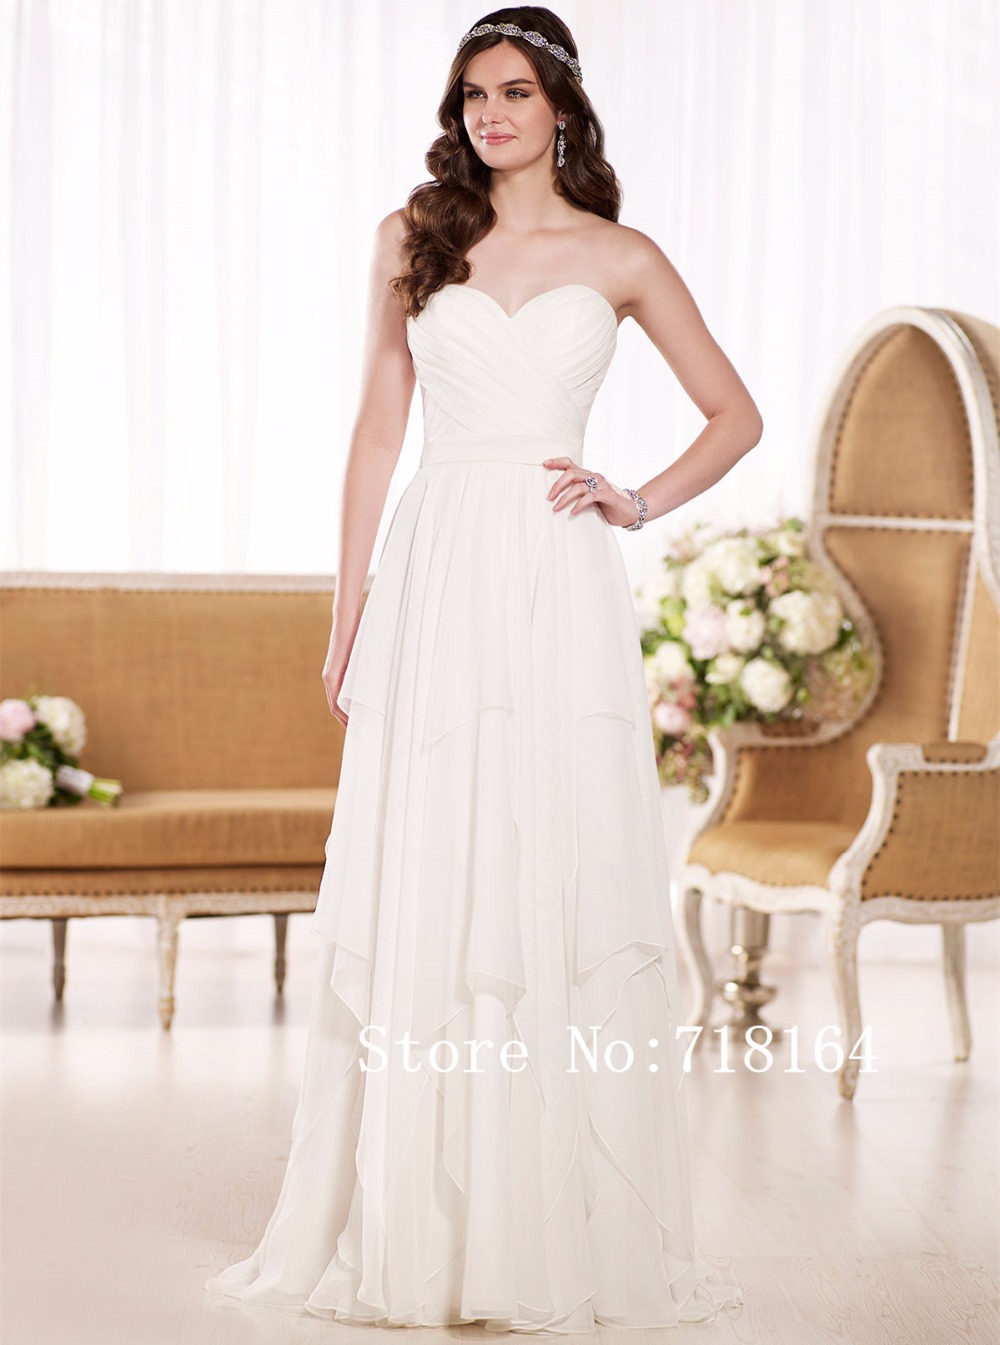 grecian style wedding dress greek style long white prom dress simple wedding dress